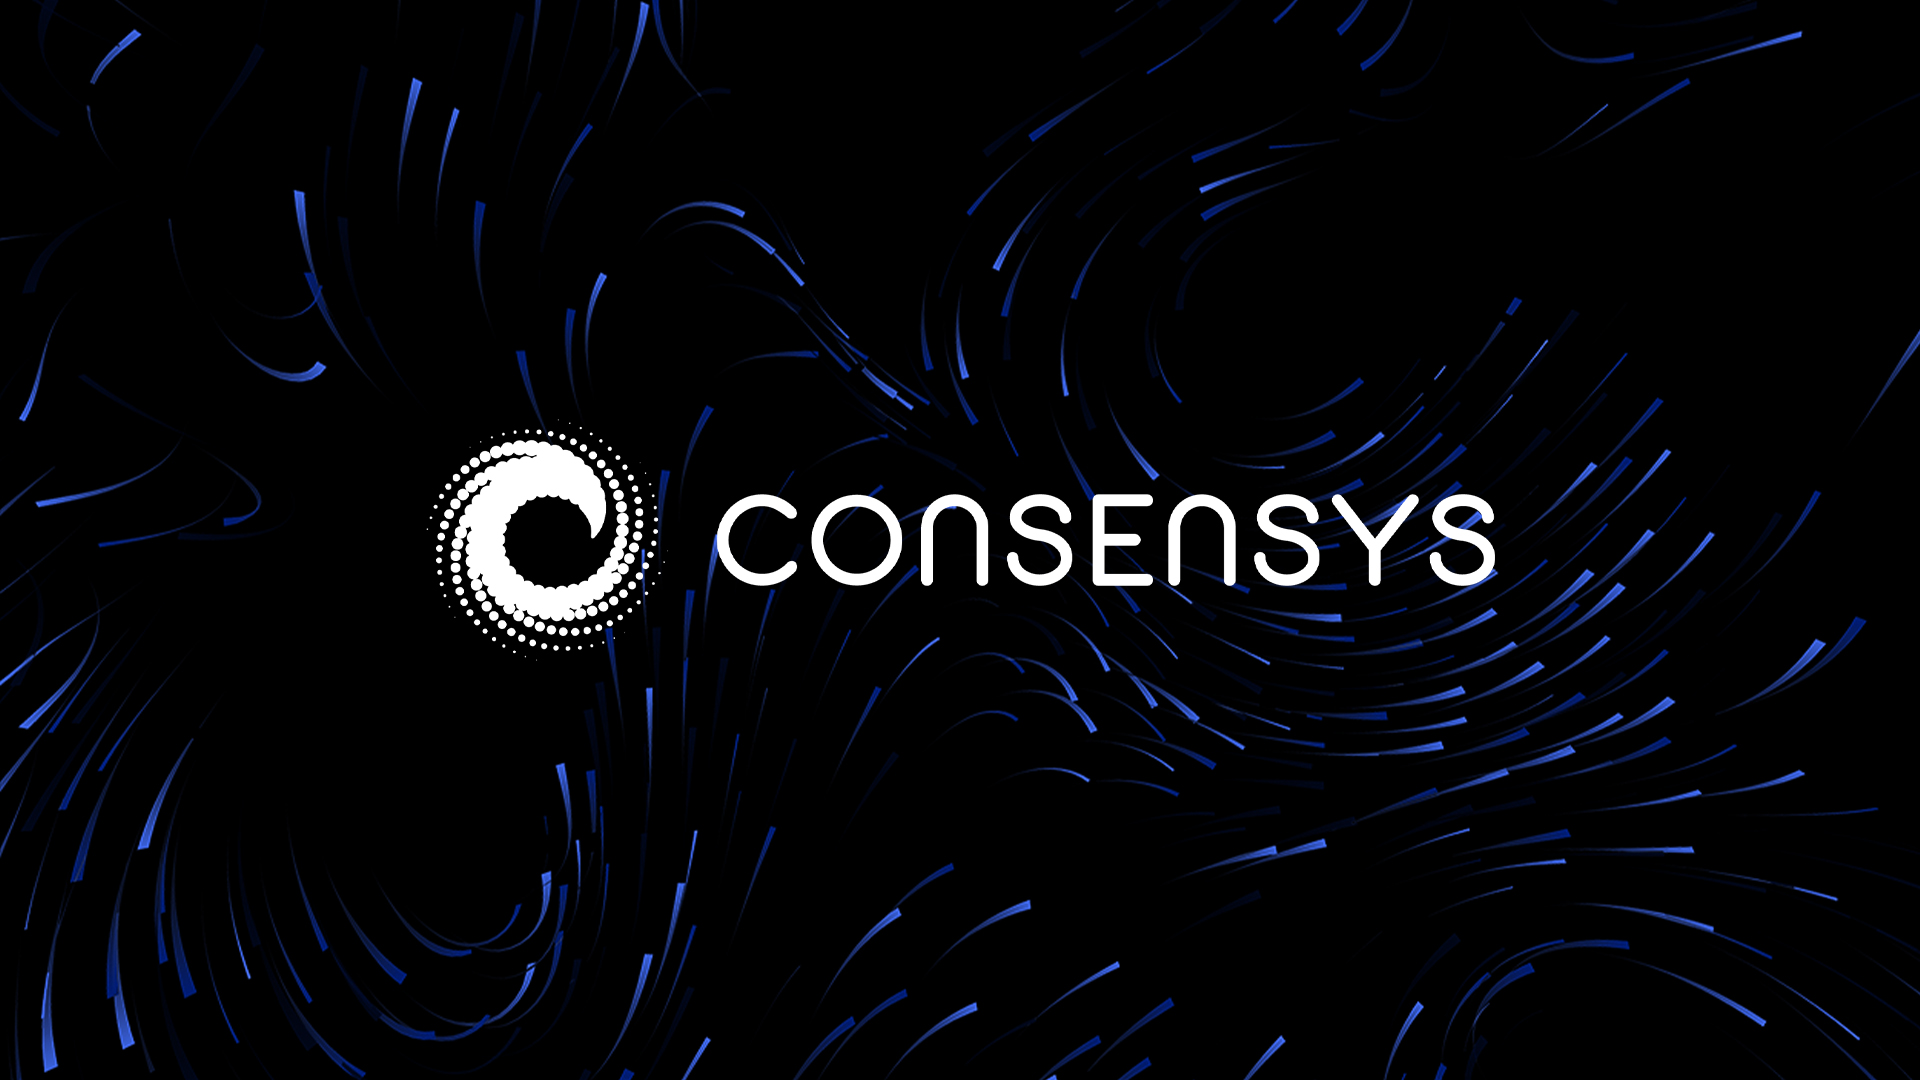 ConsenSys Selected by Societe Generale - Forge to Provide Technology and Expertise for Its Central Bank Digital Currency Experiments